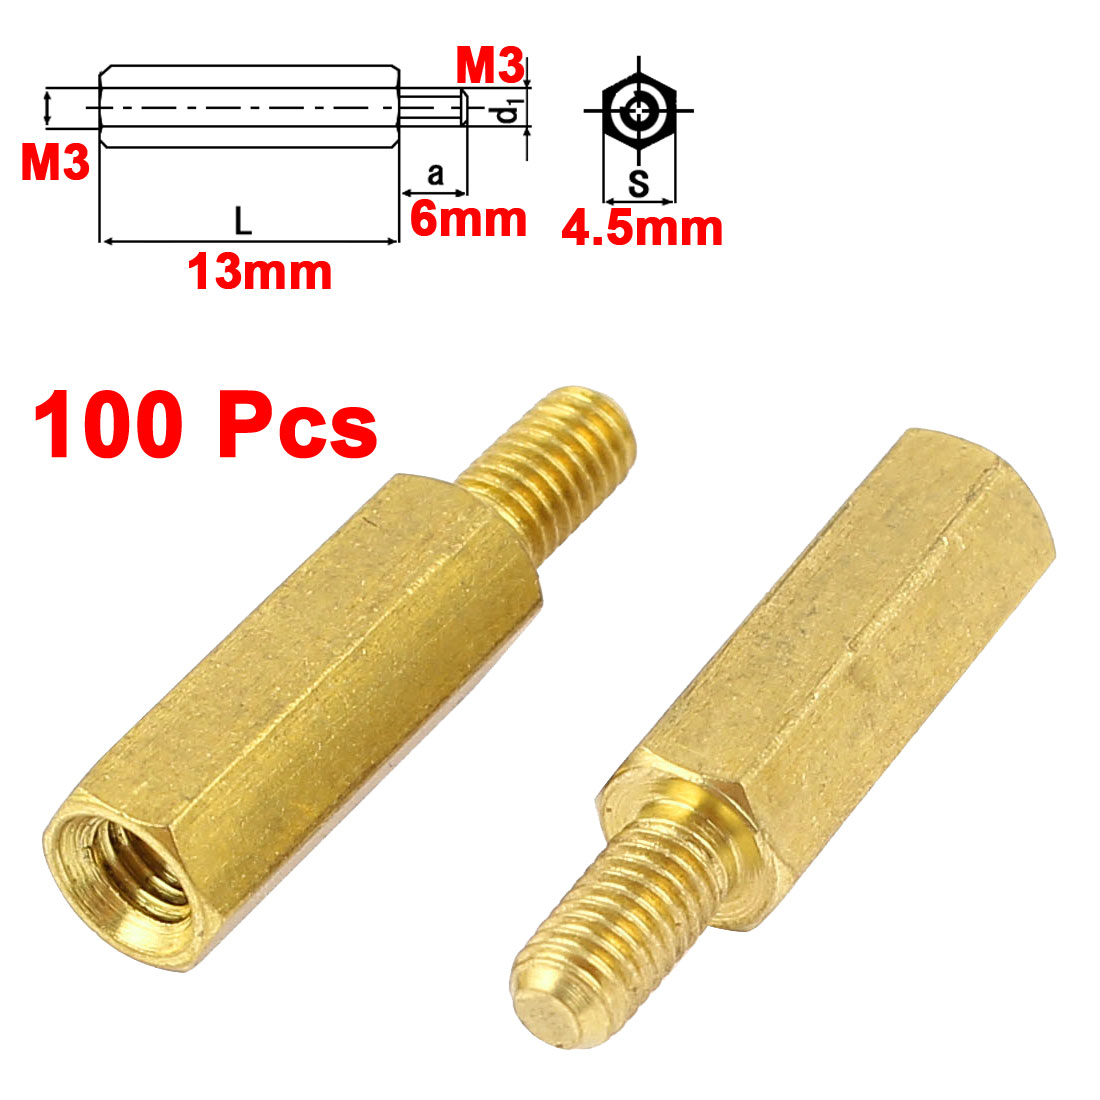 100Pcs M3 Male to Female 13mm+6mm Screw Threaded Brass Hex Standoff Spacer for PCB Motherboard